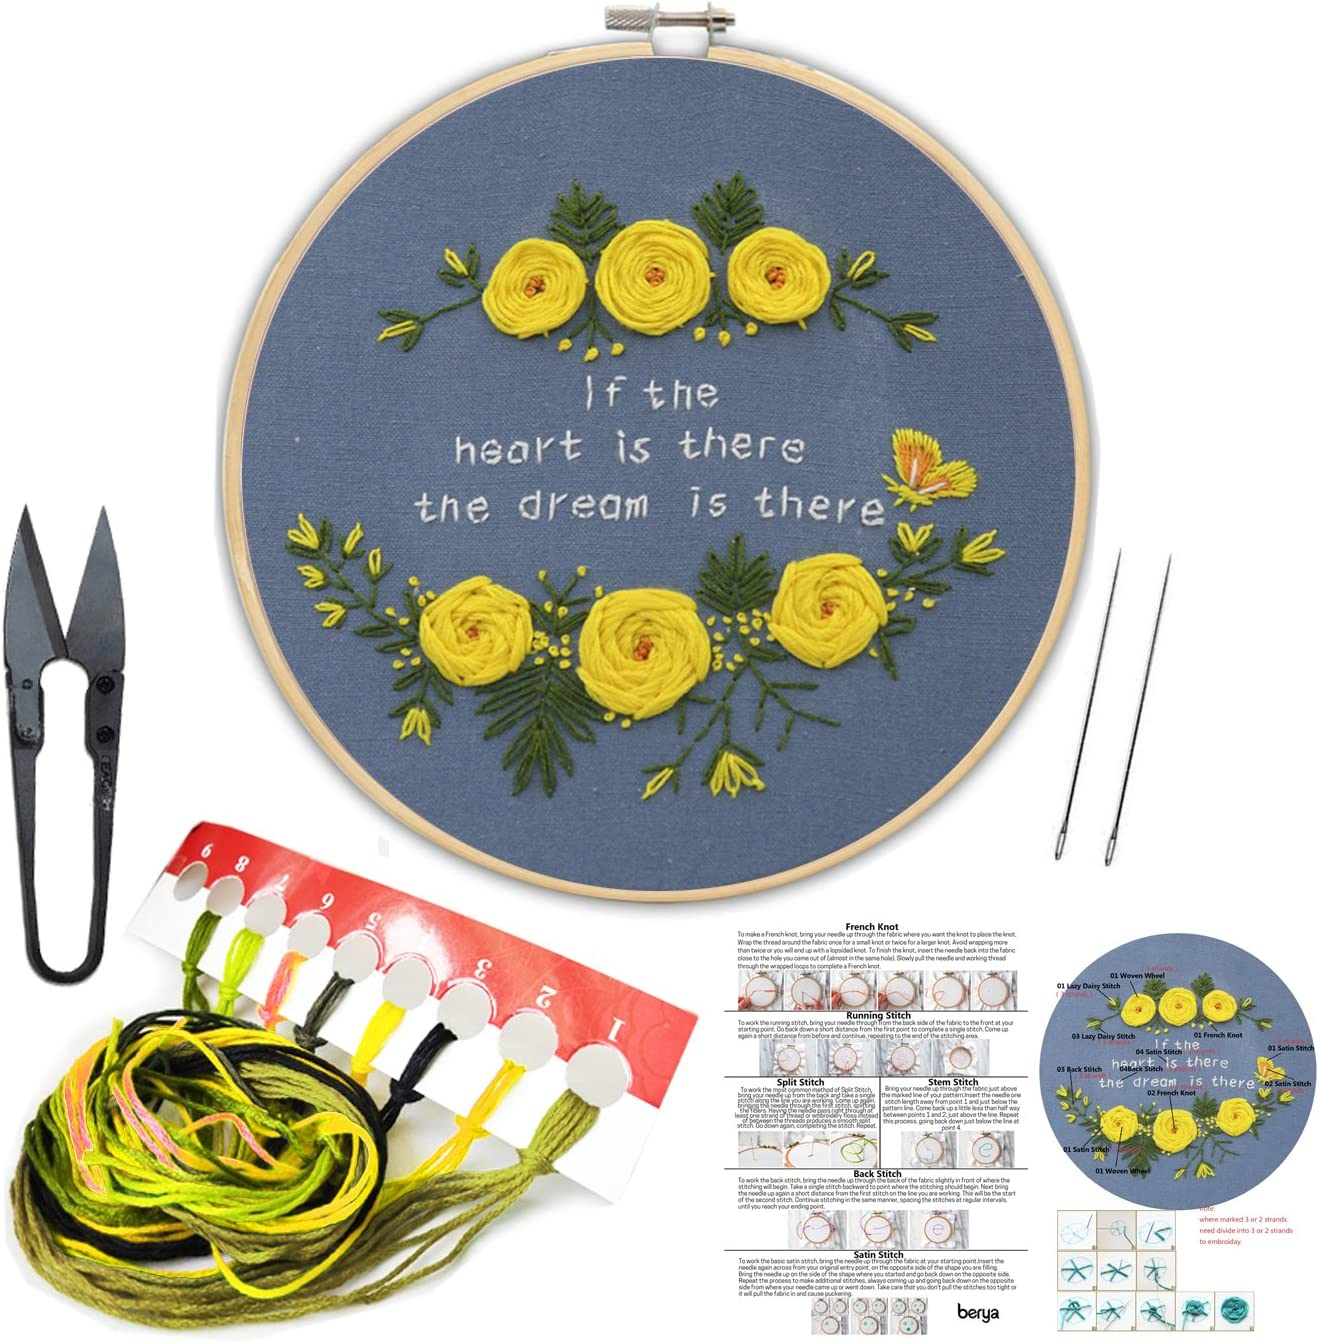 Handmade Embroidery Starter Kit Set with Partten Including Embroidery Cloth,Bamboo Embroidery Hoop and Other Tools Kit for Beginners Color Threads